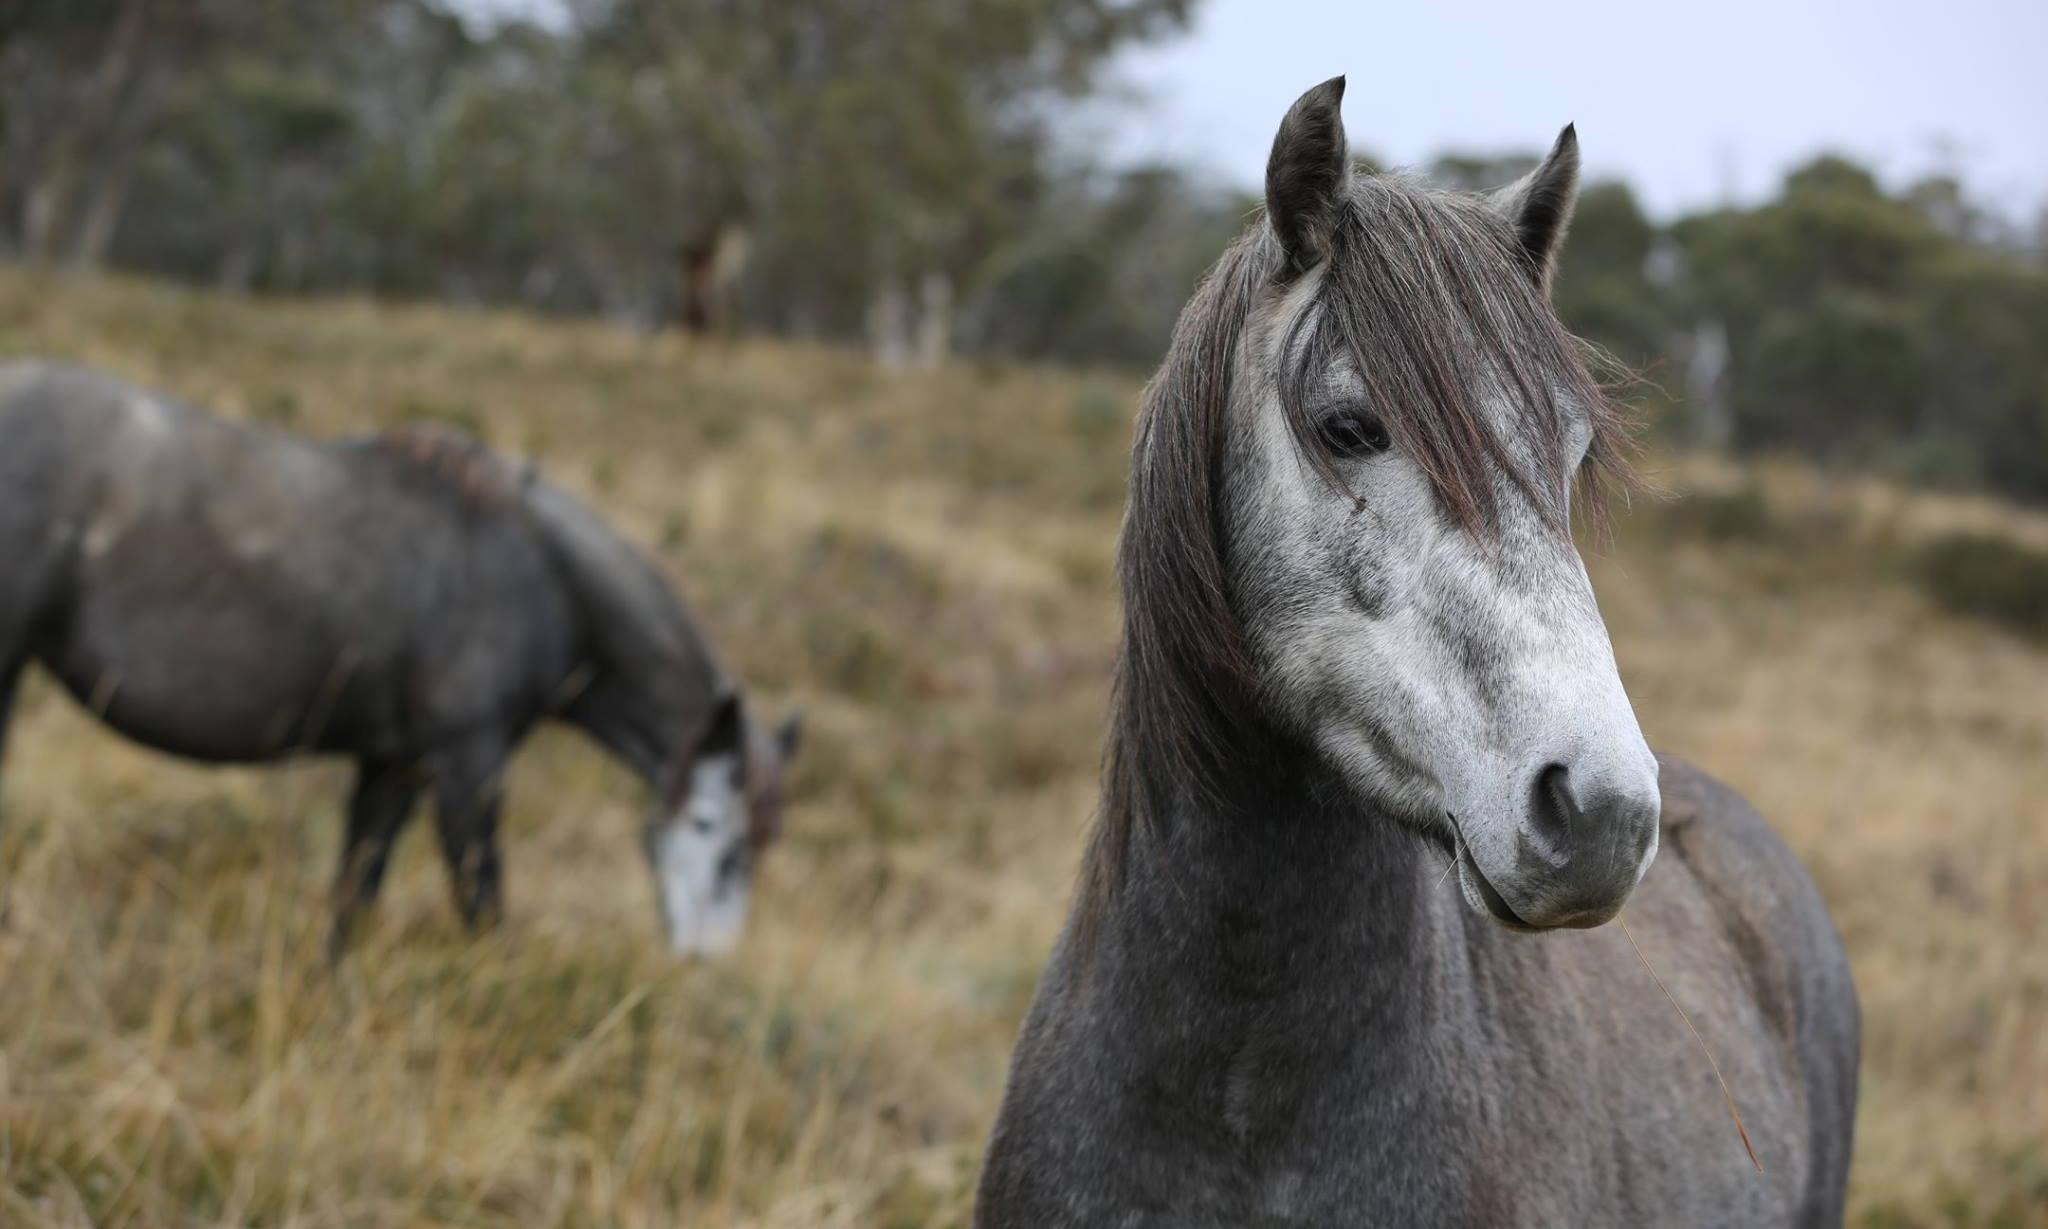 Thousands of feral horses to be removed from Kosciuszko national park after bushfires